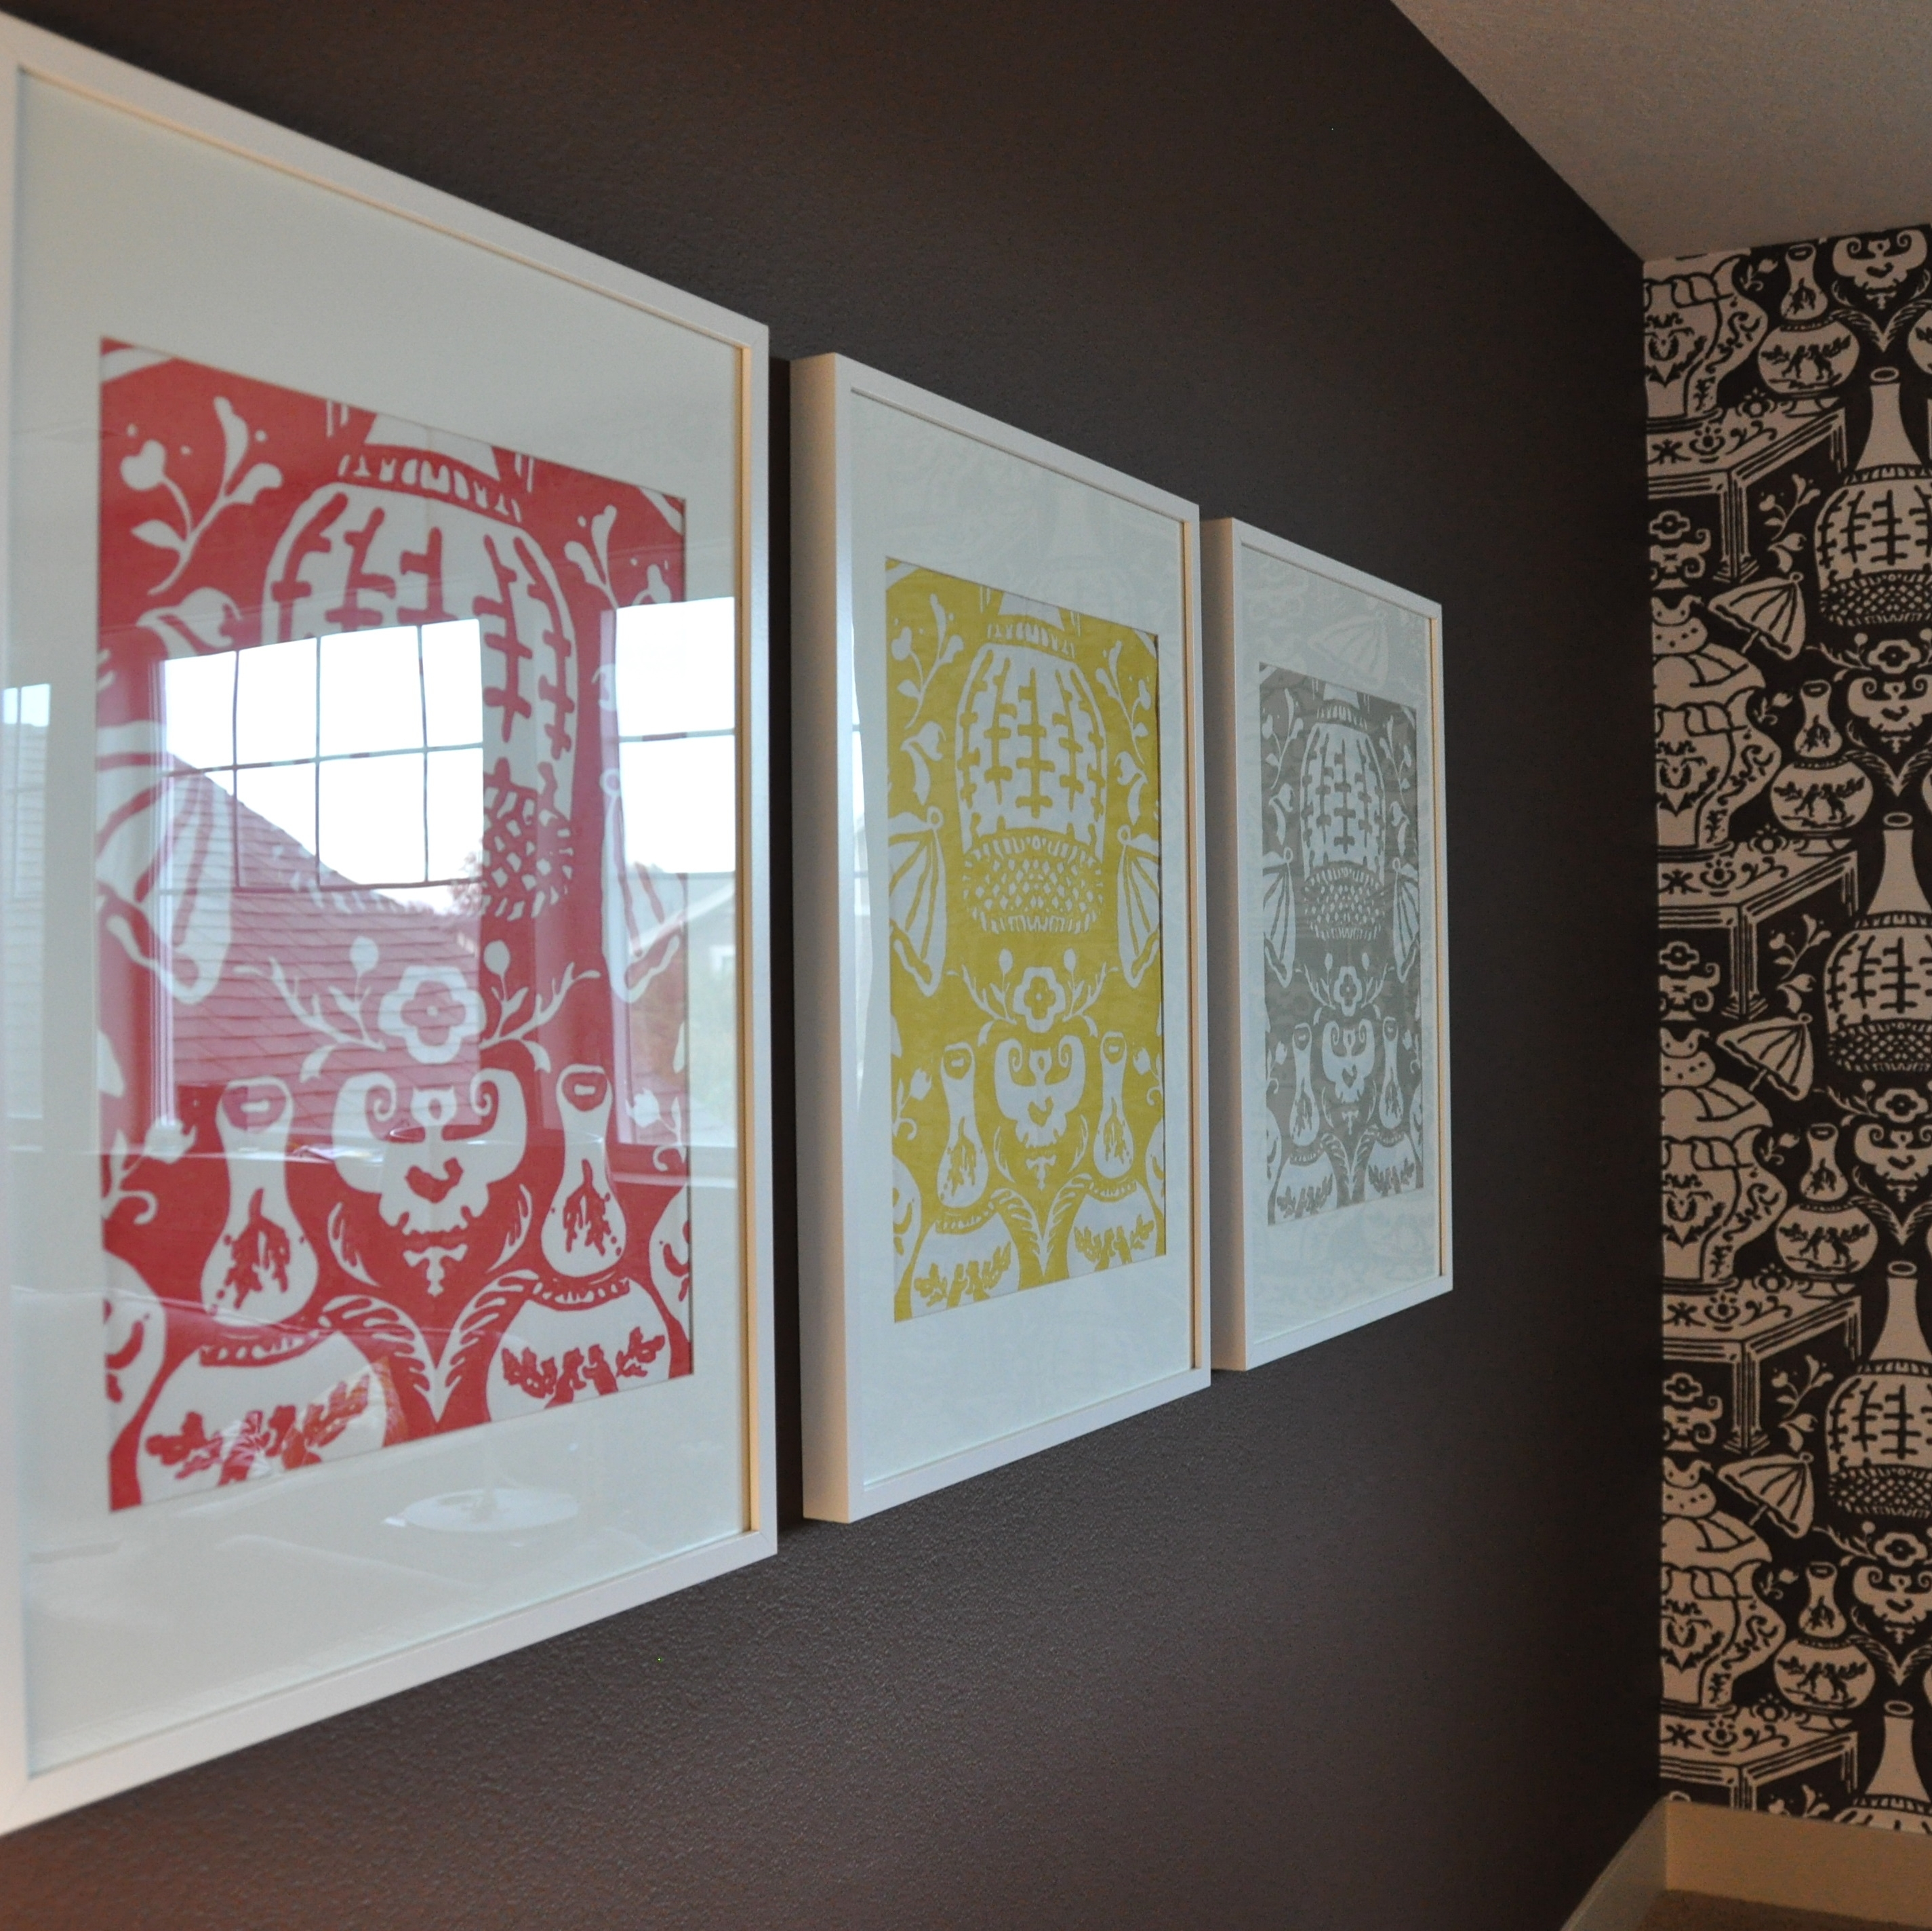 Wallpaper Samples In Ikea Ribba Frames = Simple & Fun Art! | Great Within Most Up To Date Fabric Decoupage Wall Art (View 11 of 15)